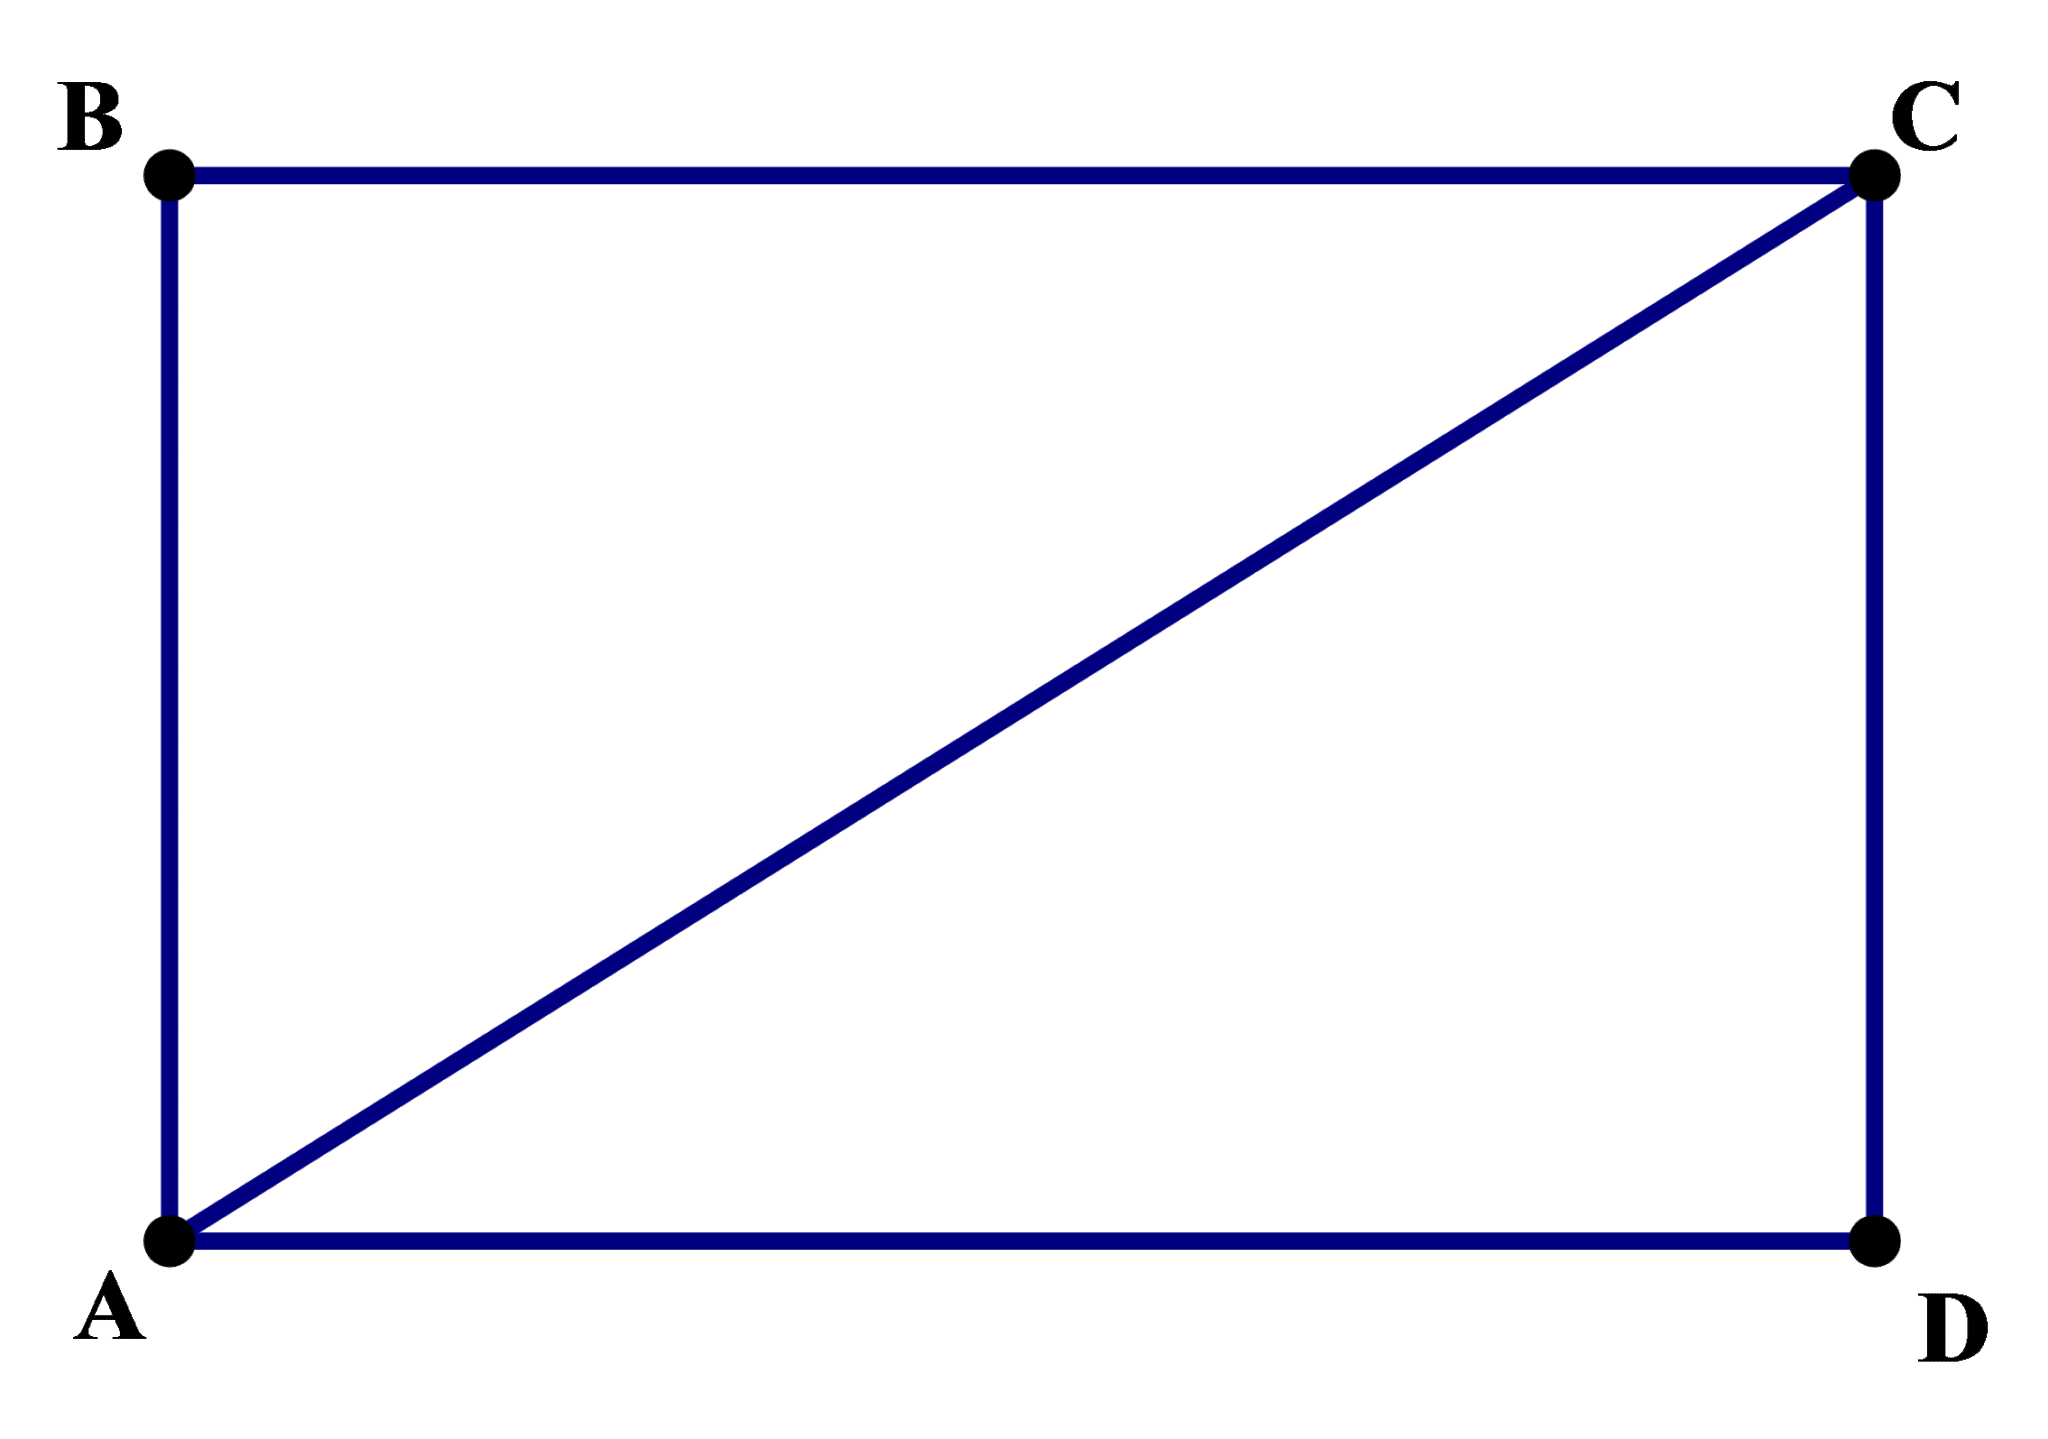 Gre Geometry Diagram Assumptions